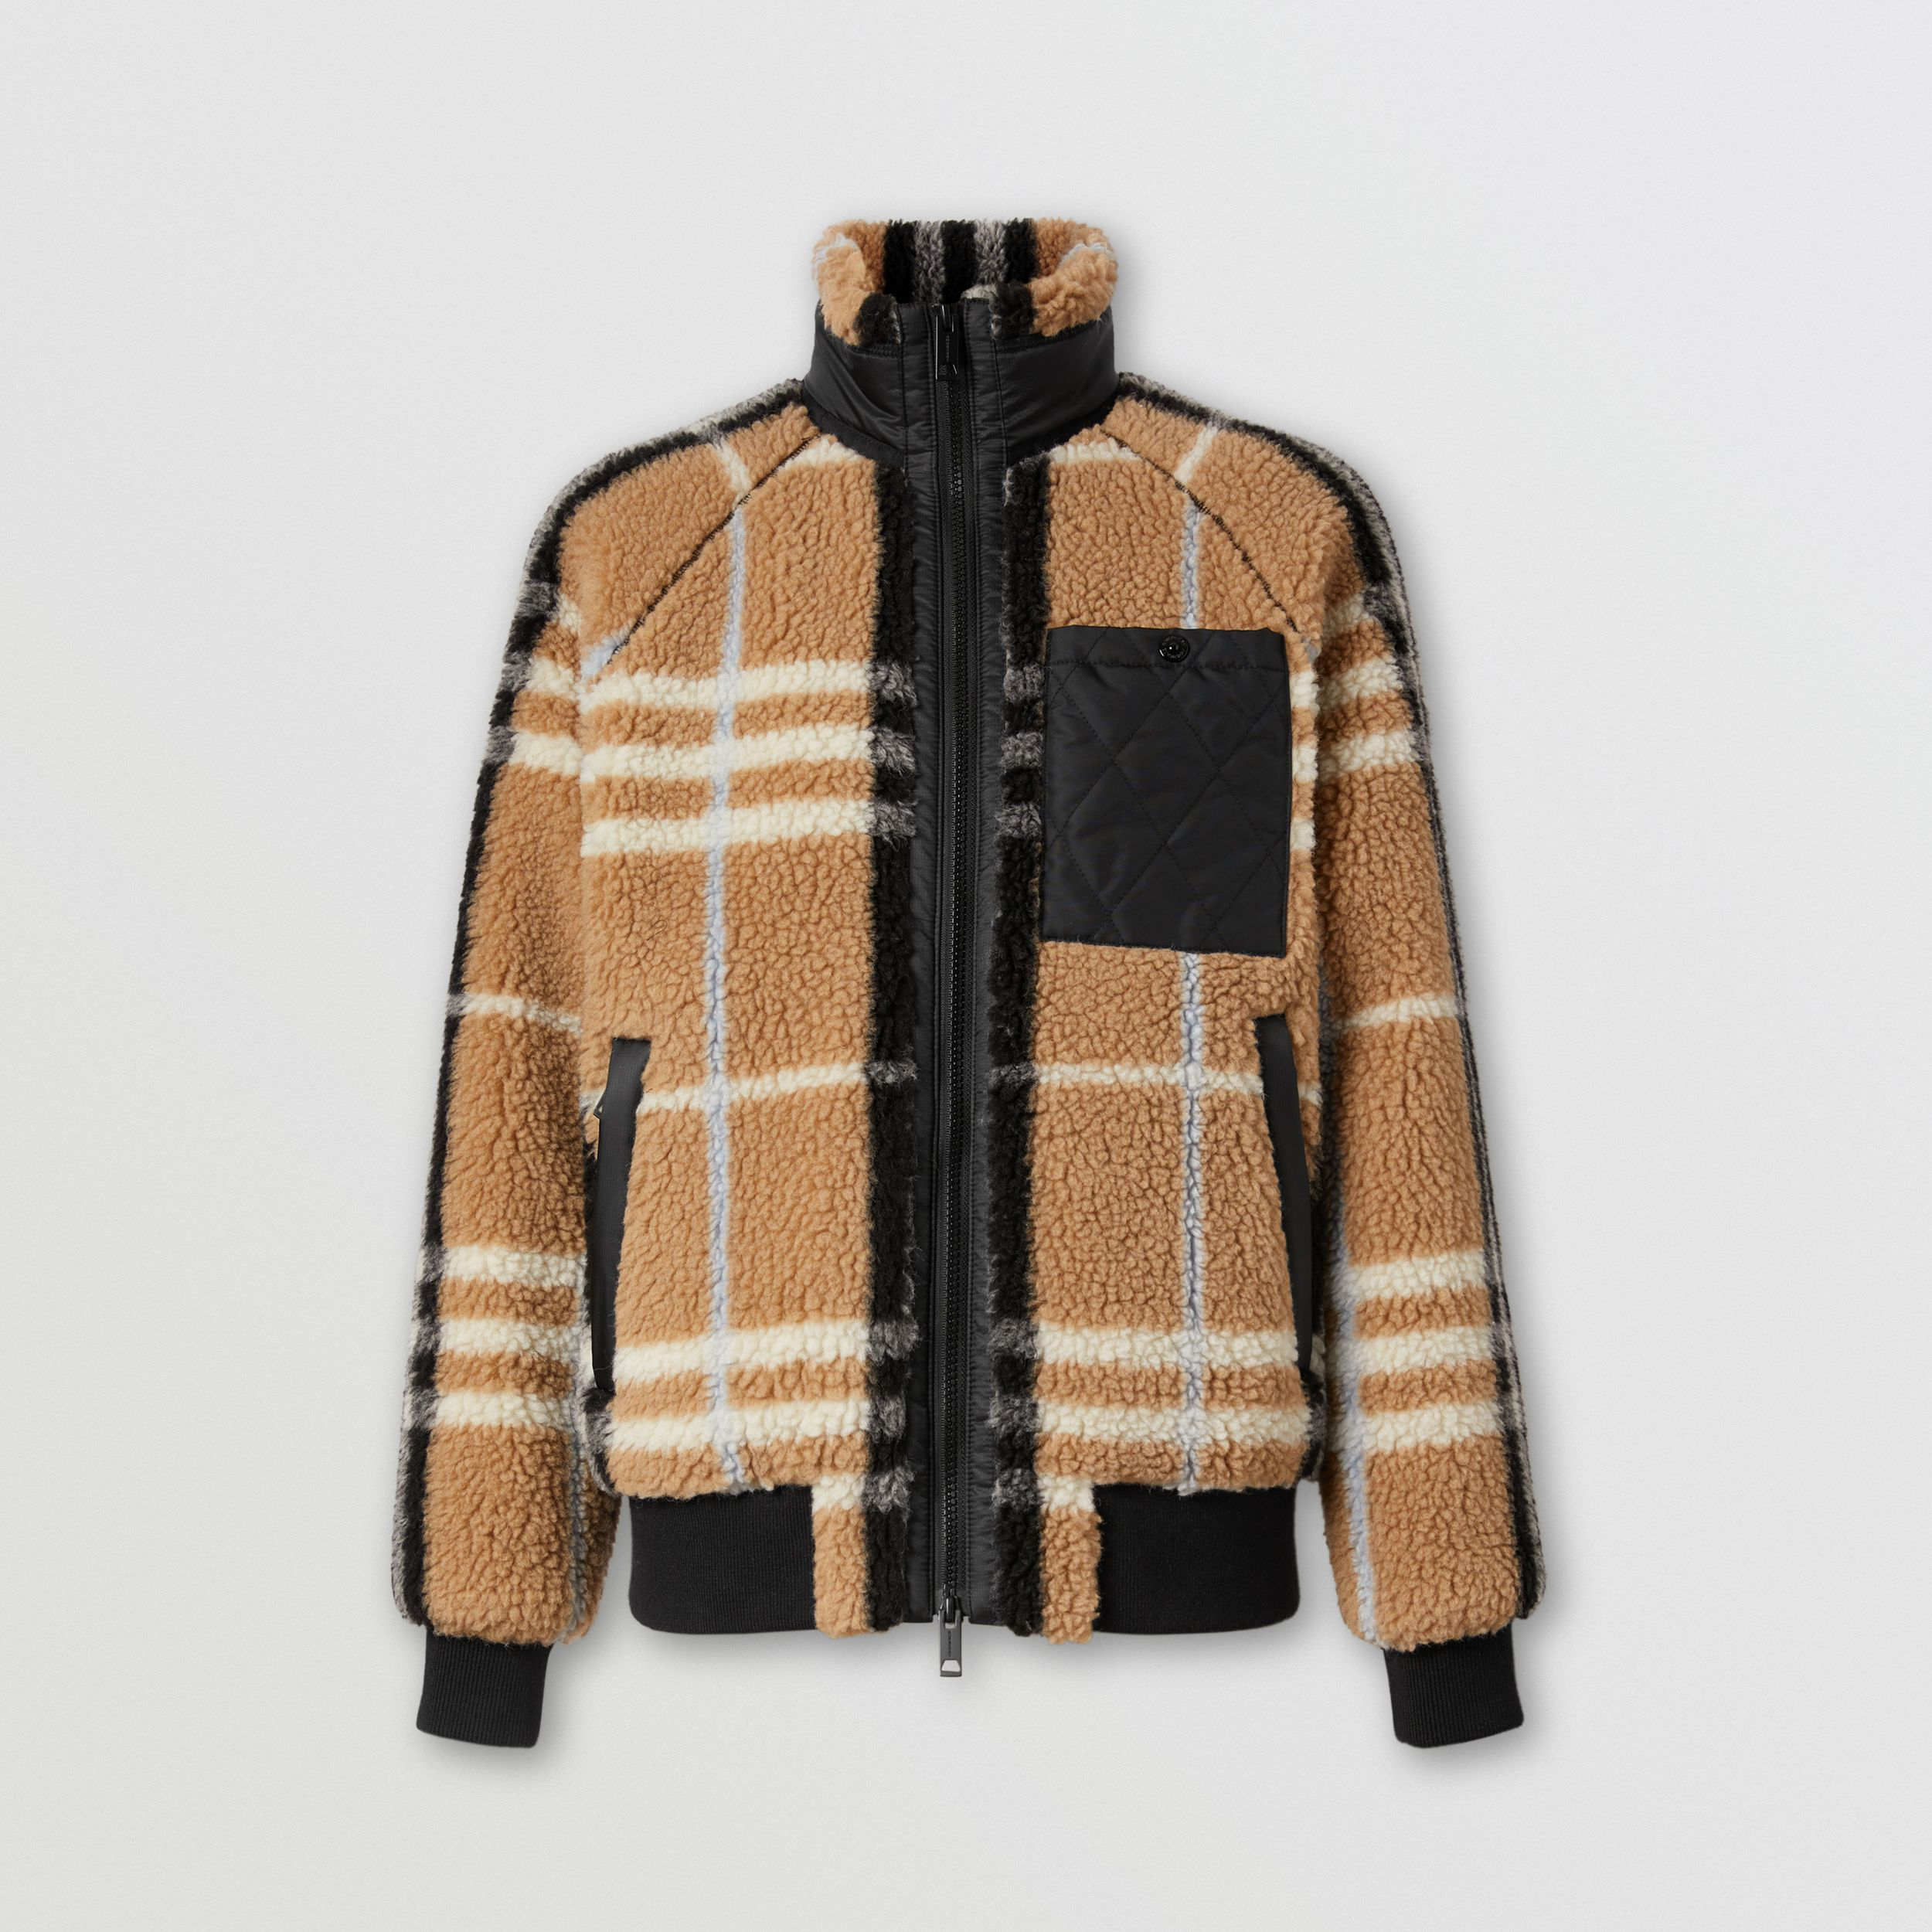 Diamond Quilted Panel Check Fleece Jacquard Jacket in Pale Blue - Women | Burberry Australia - 4